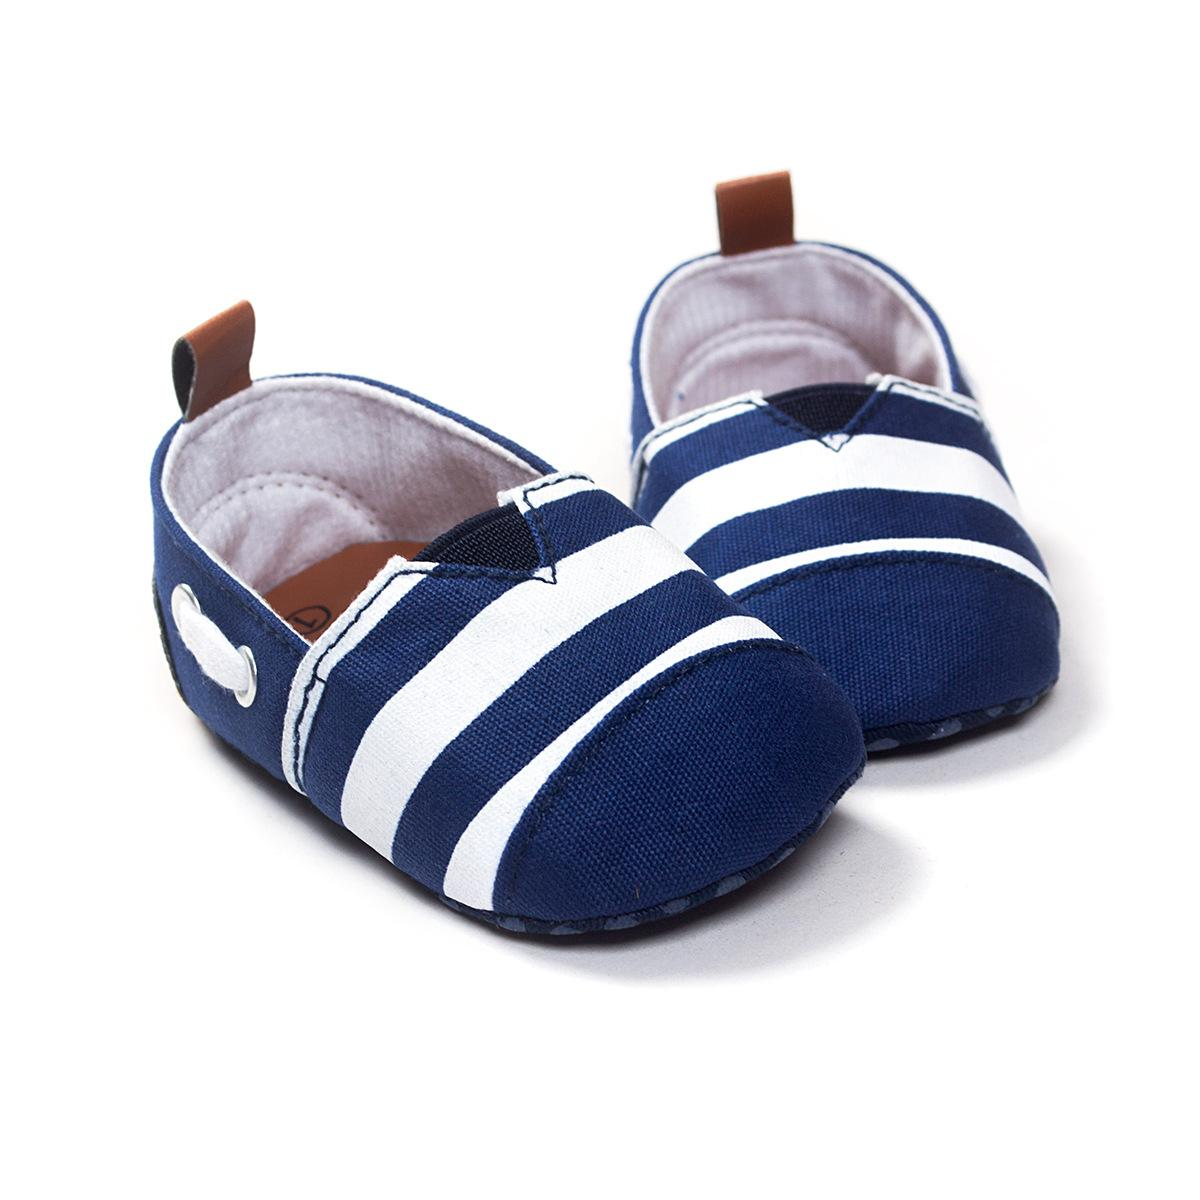 5e687b97bd2 2019 Strip Boy Soft Sole Baby Shoes Moccasins Baby First Walkers Toddlers  Sneakers Infant Shoes Brand Boys Kids Footwear Navy Blue From Rh baby